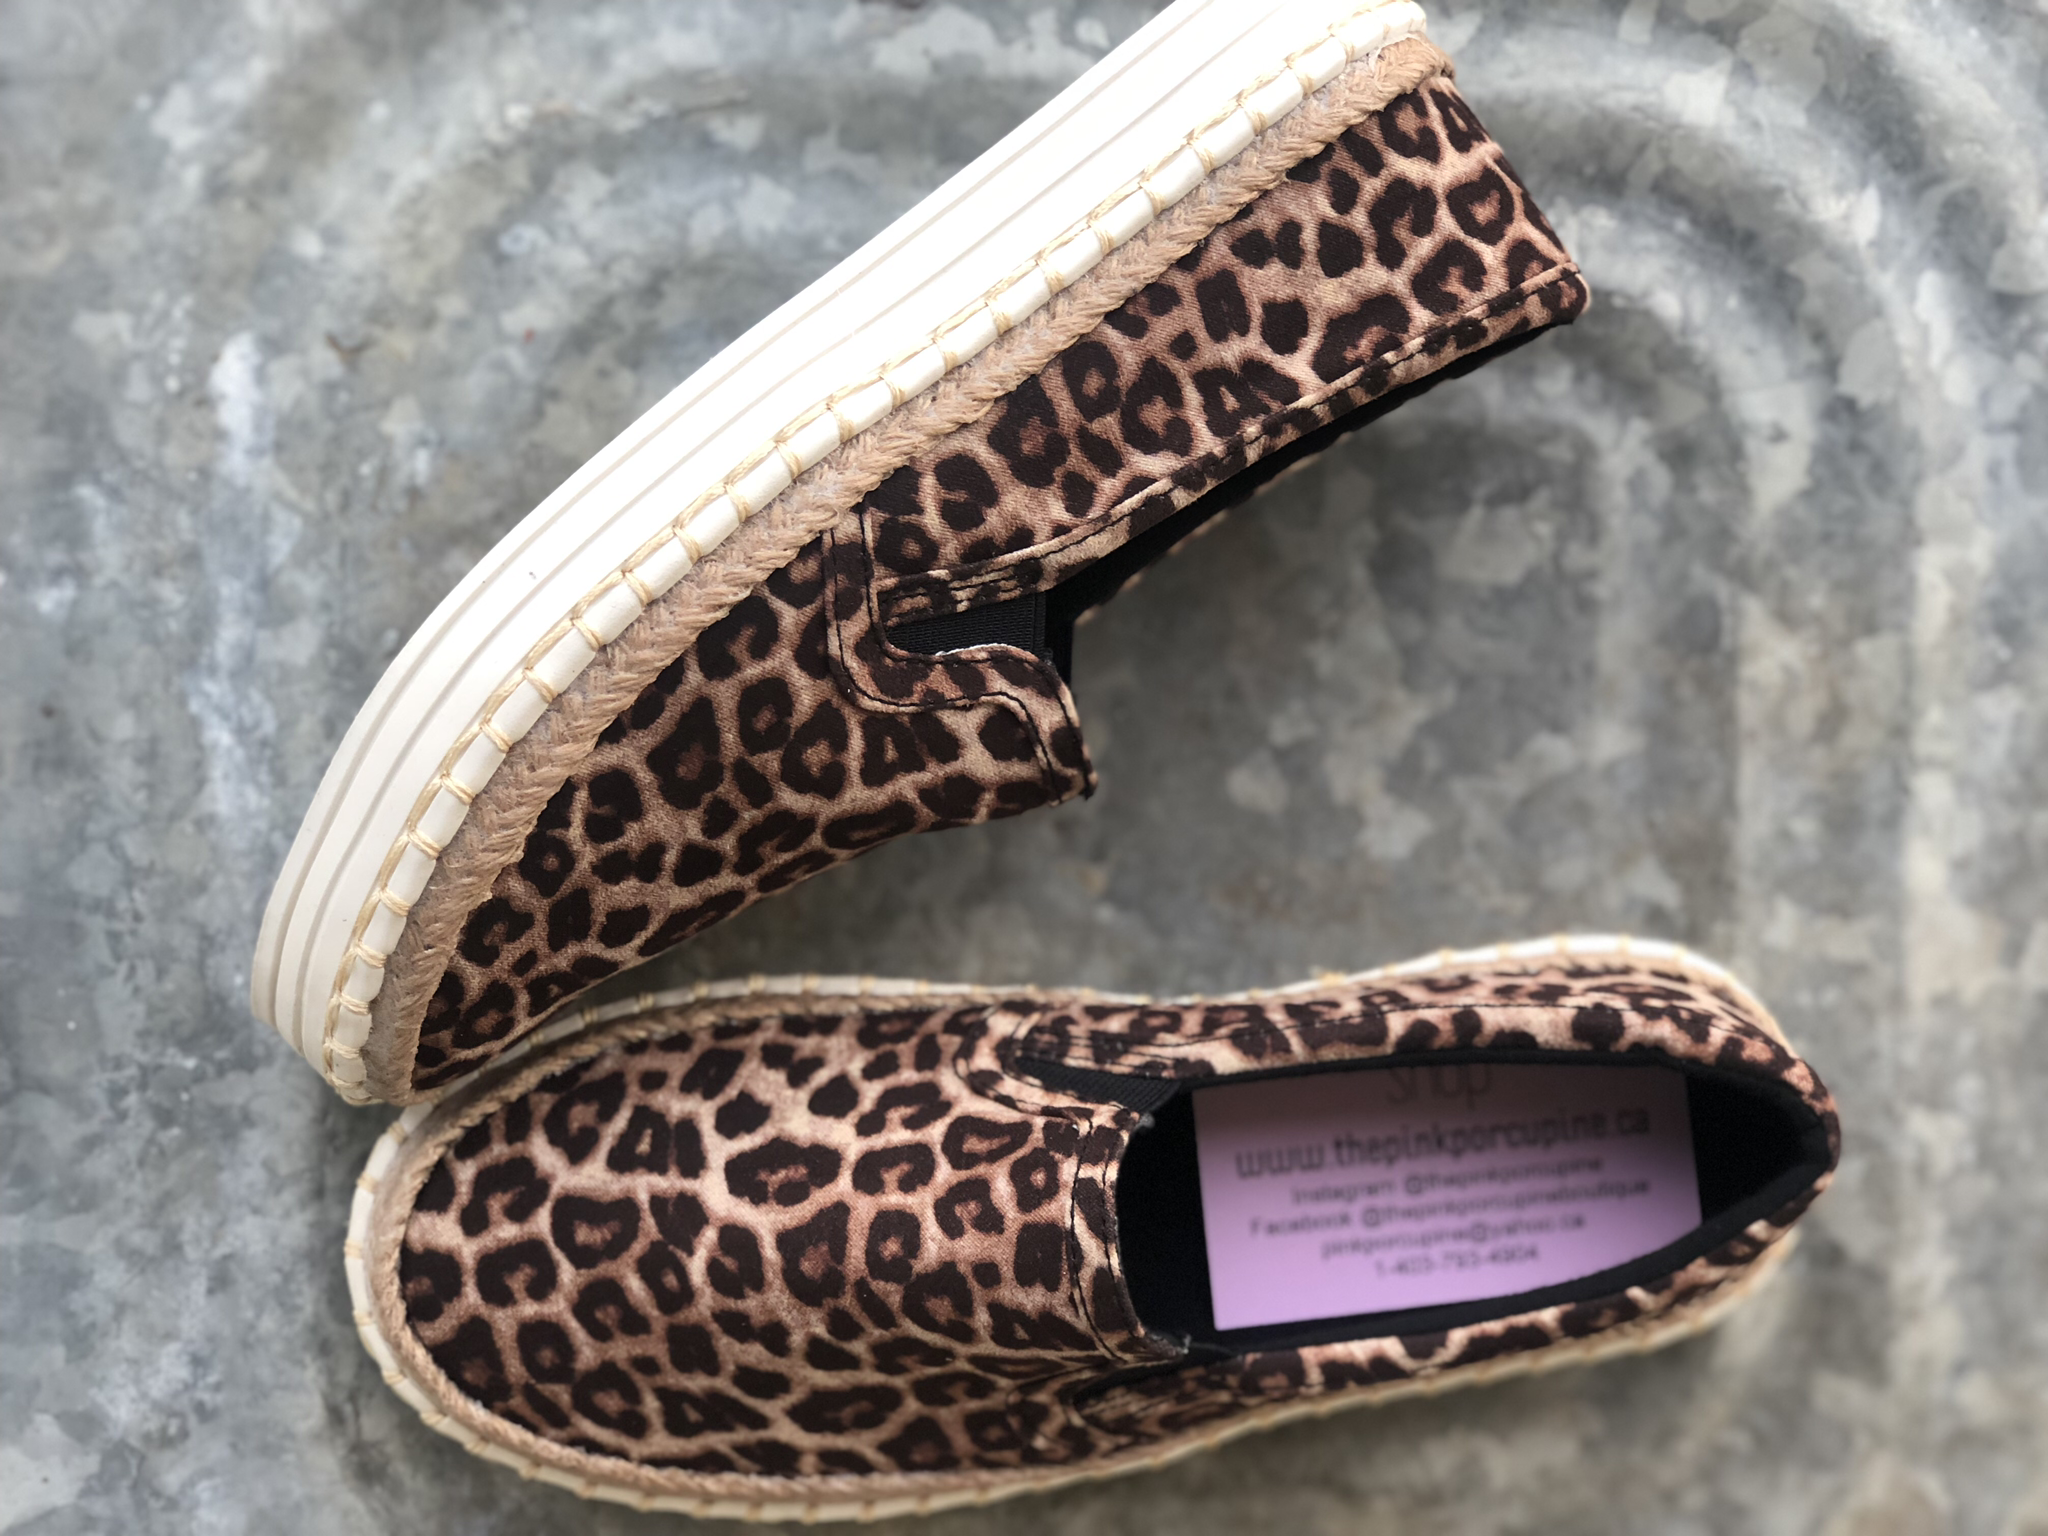 The Cheetah Flats - 5.5 Left 981892